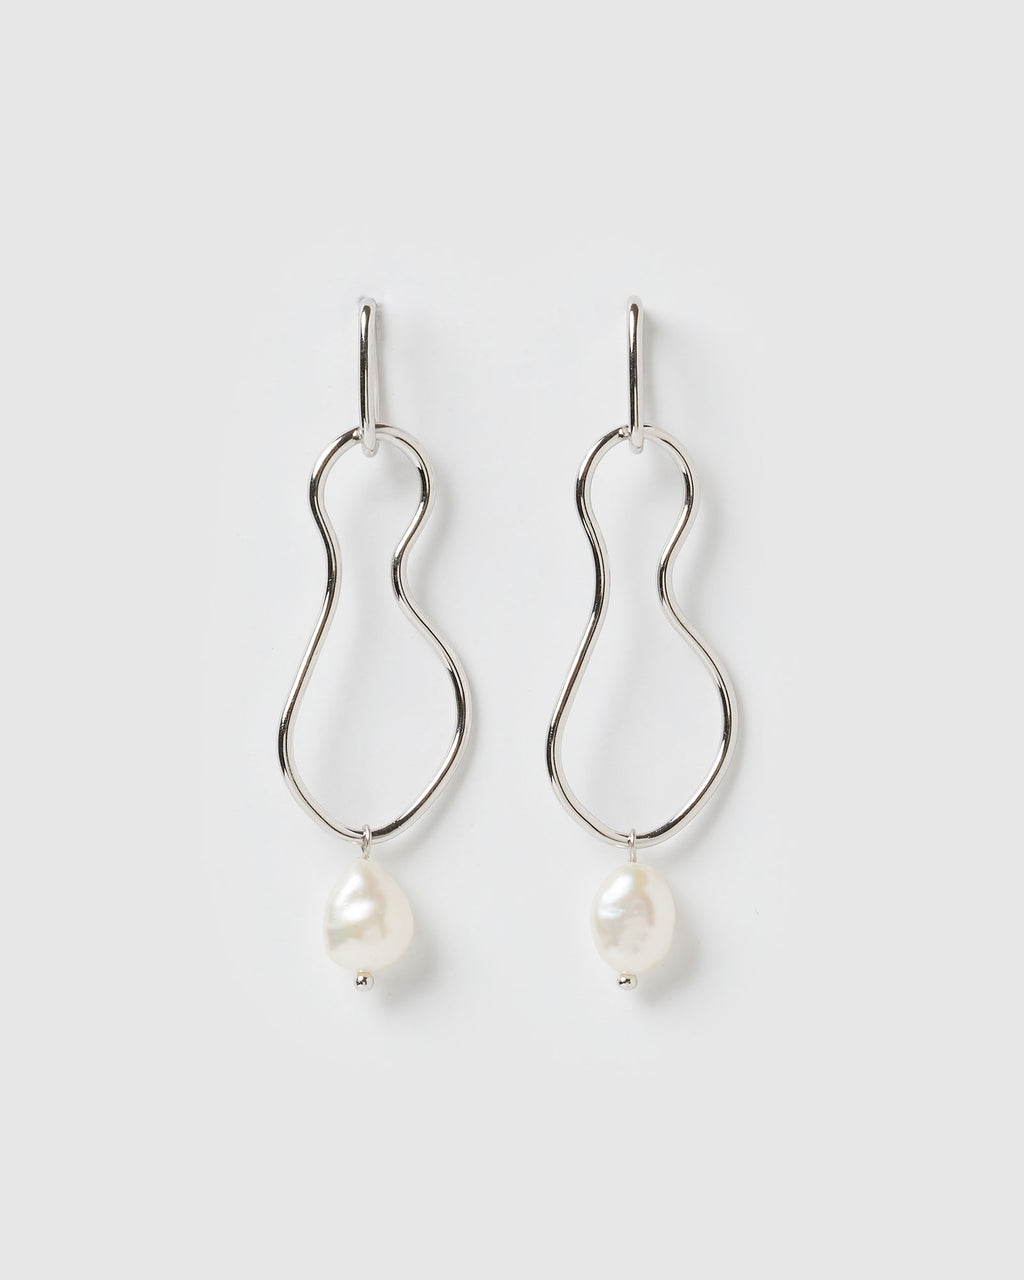 Izoa Tranquility Earrings Silver Freshwater Pearl